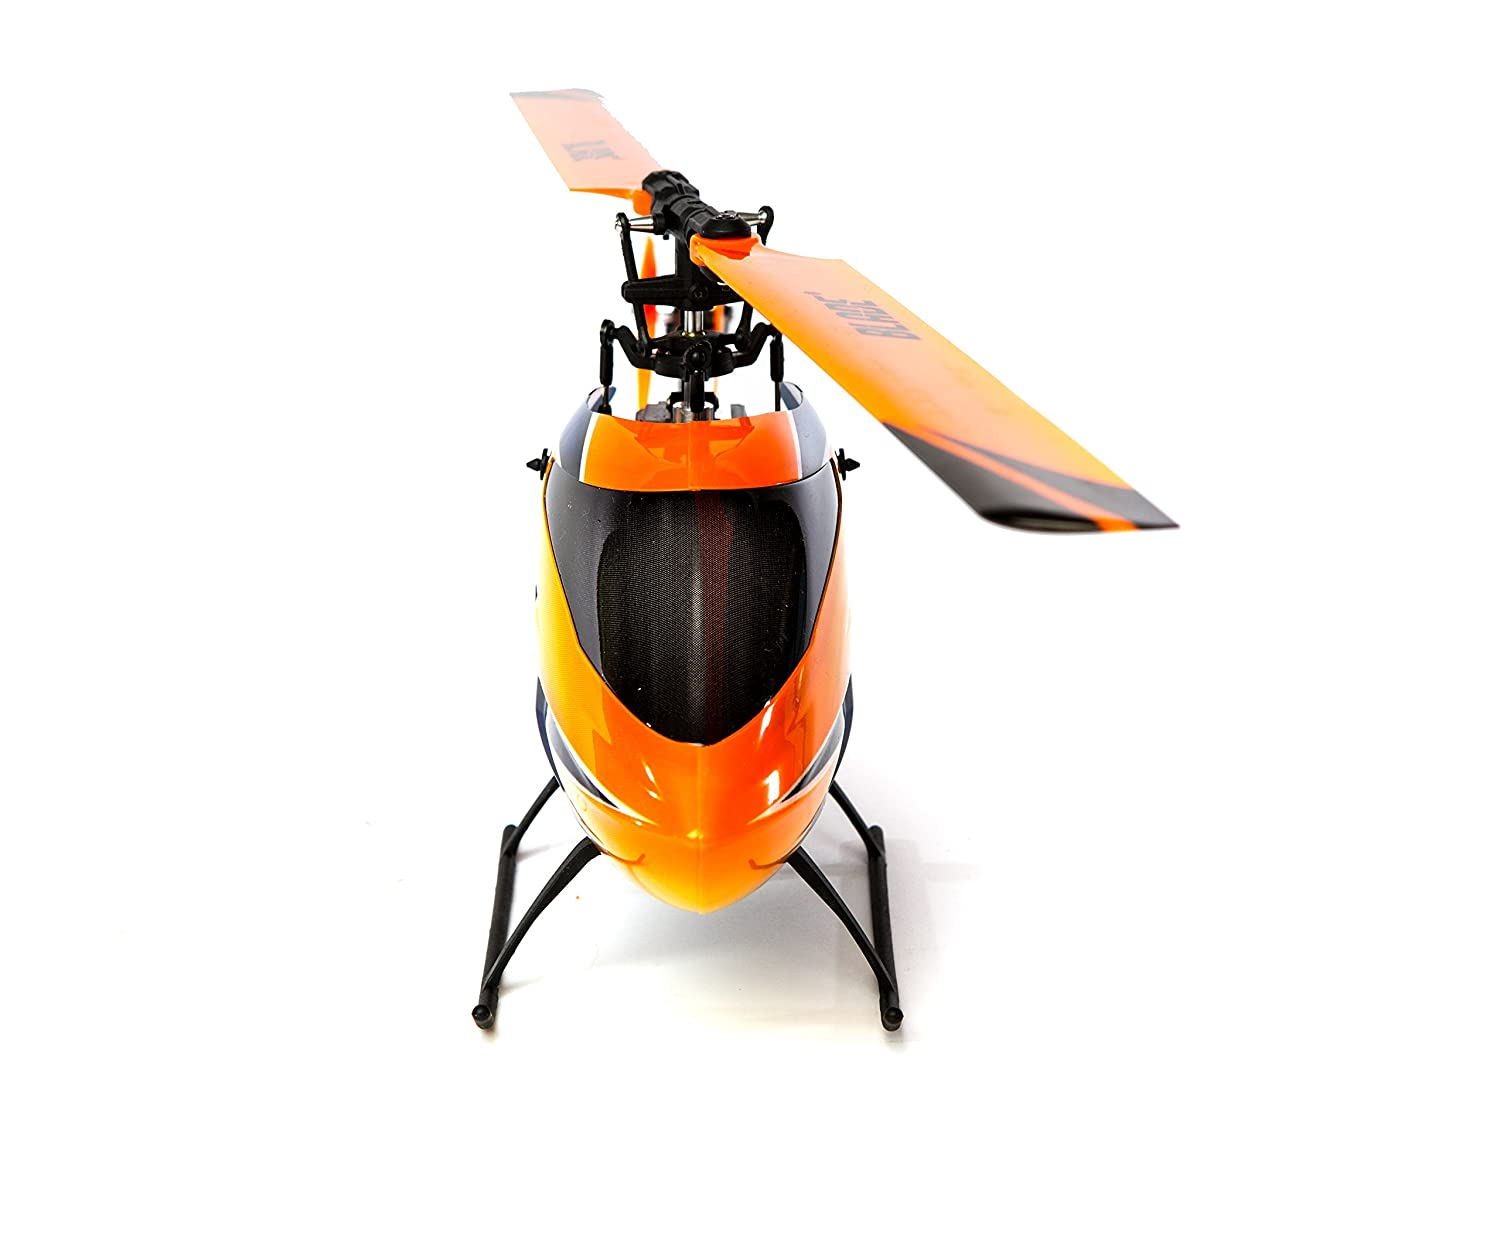 Blade 230 S V2 Best RC Helicopter